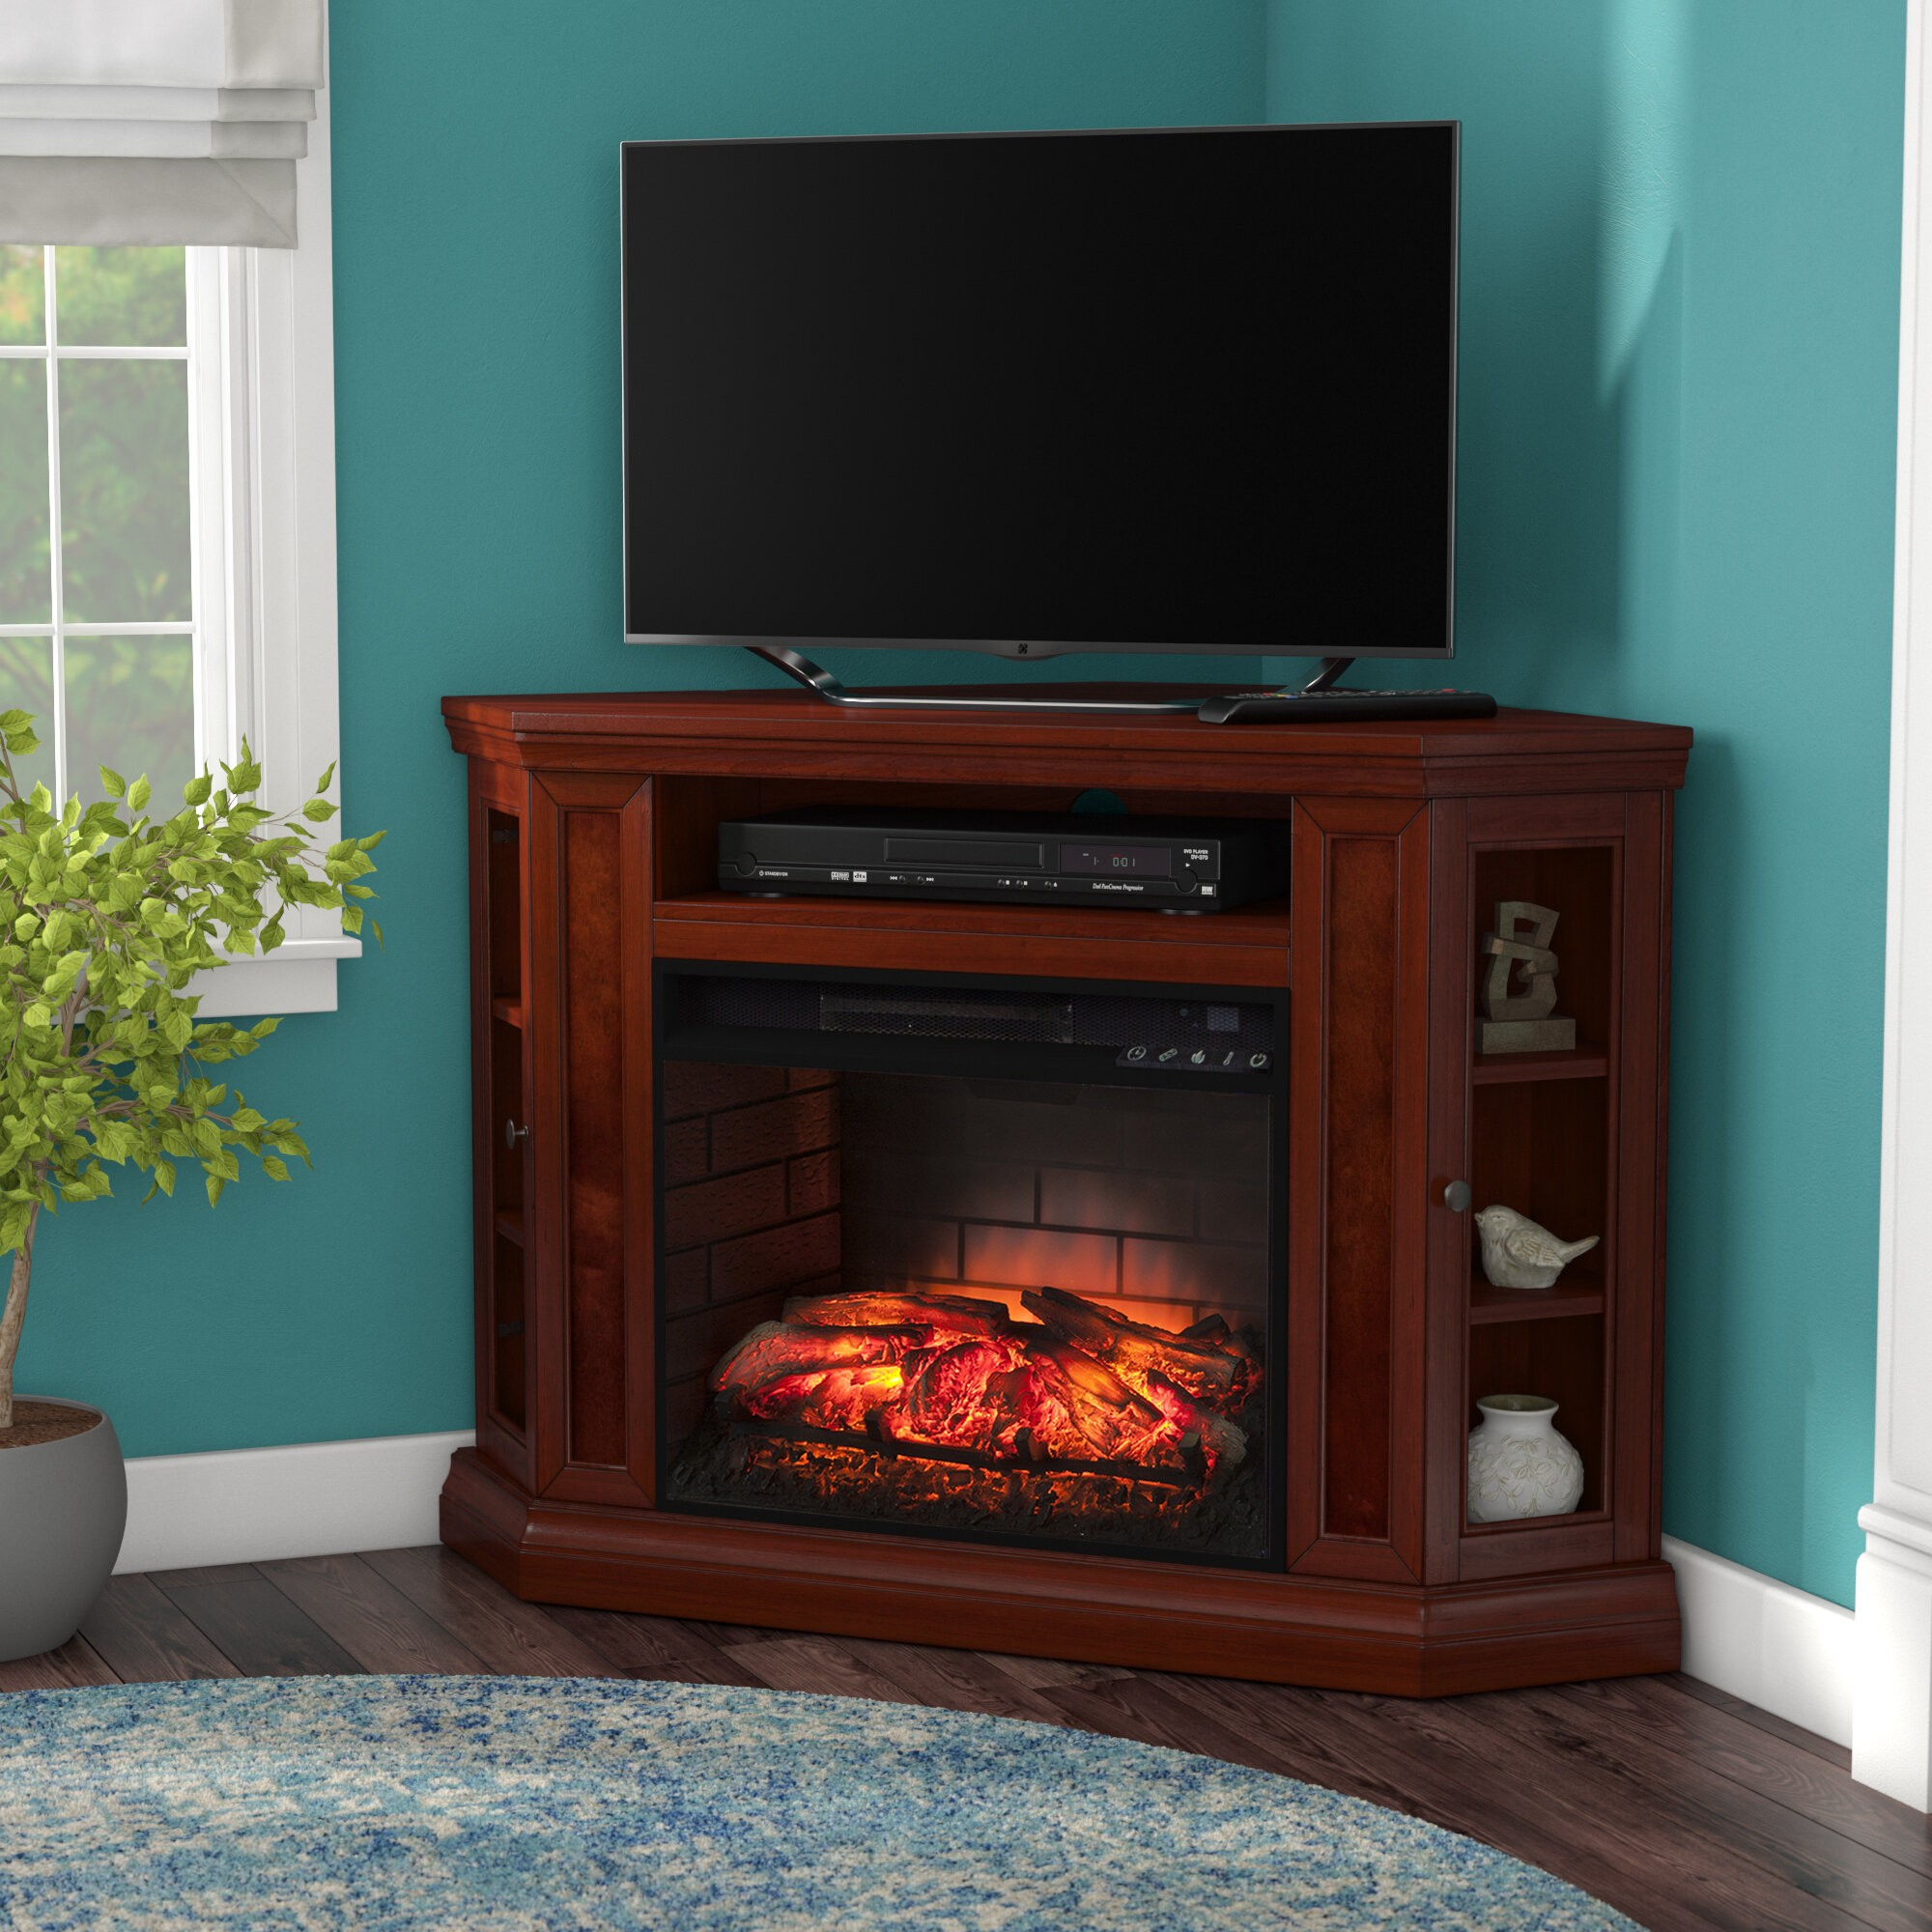 "Shanks Corner TV Stand for TVs up to 55"" with Fireplace Included"